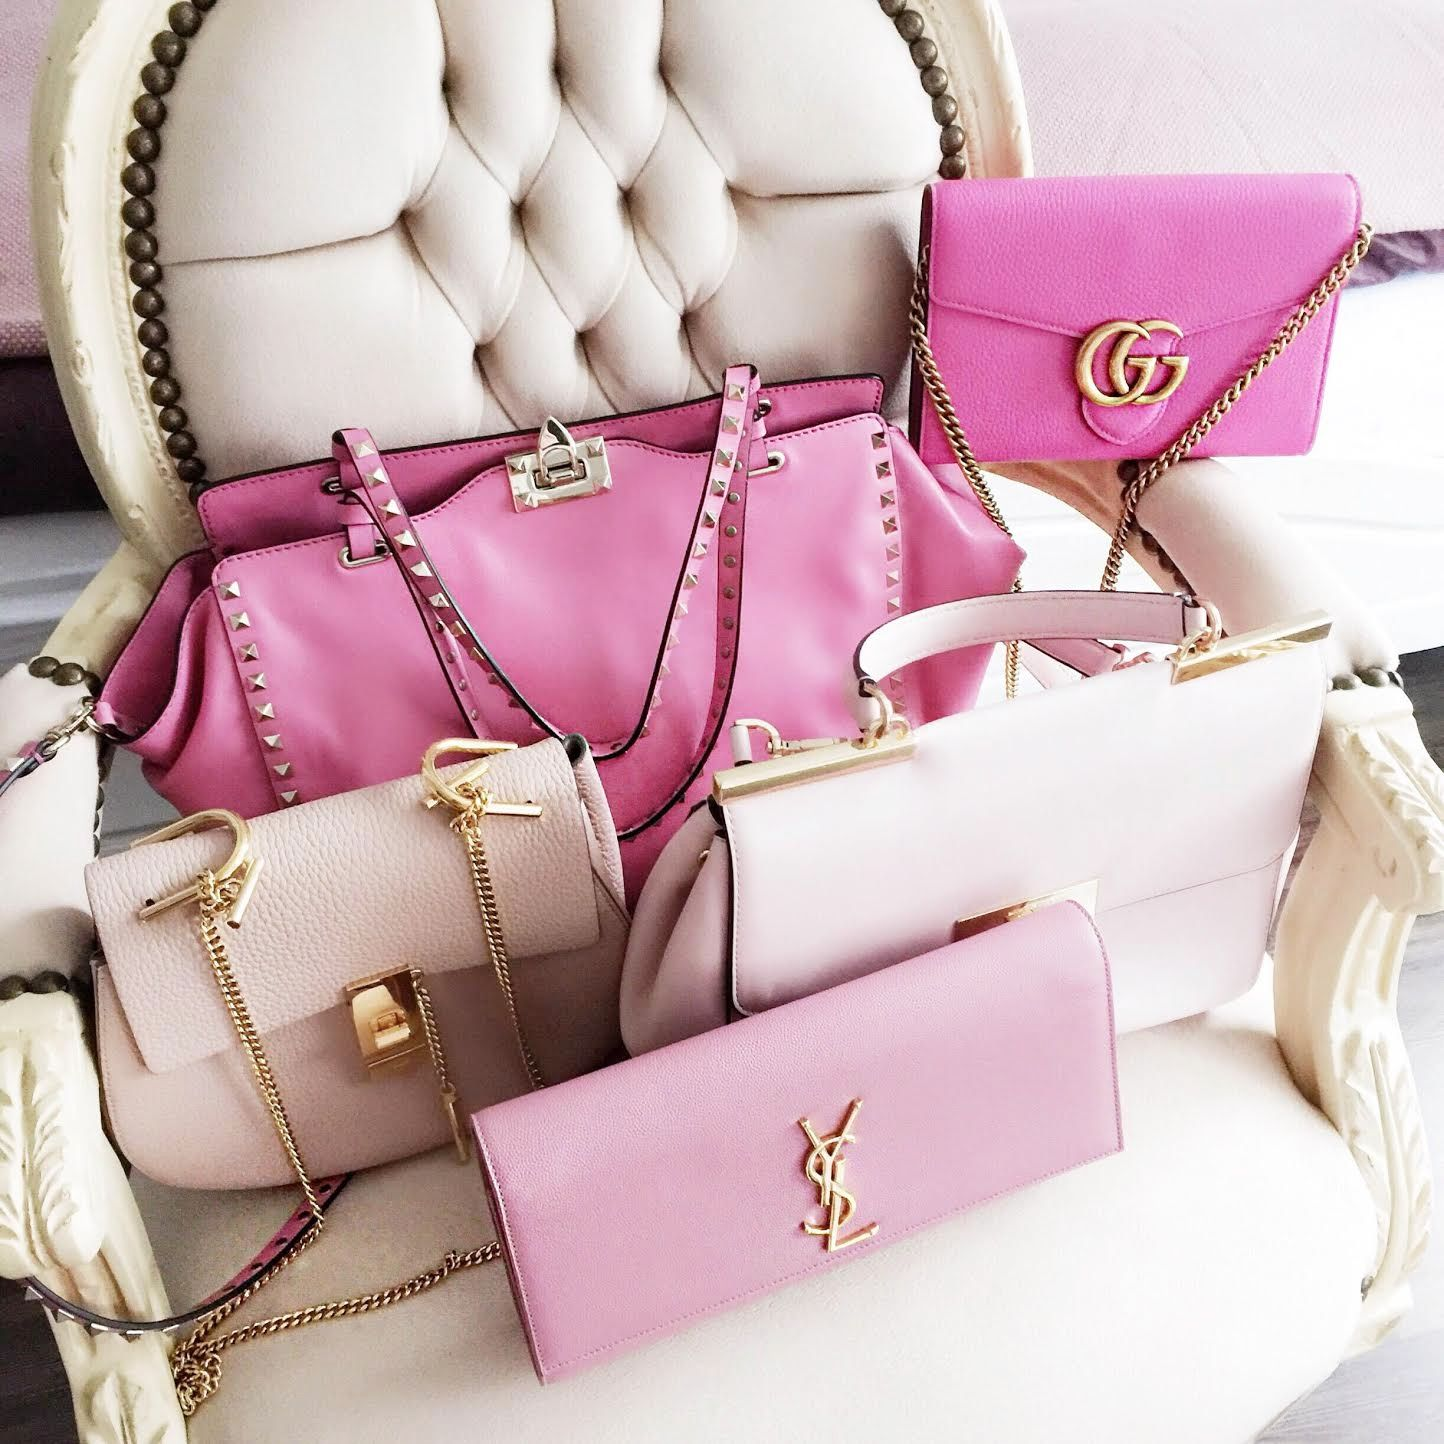 e22cb1a4fd Pink bags will probably make any girl's heart beat faster. I have also  collected a